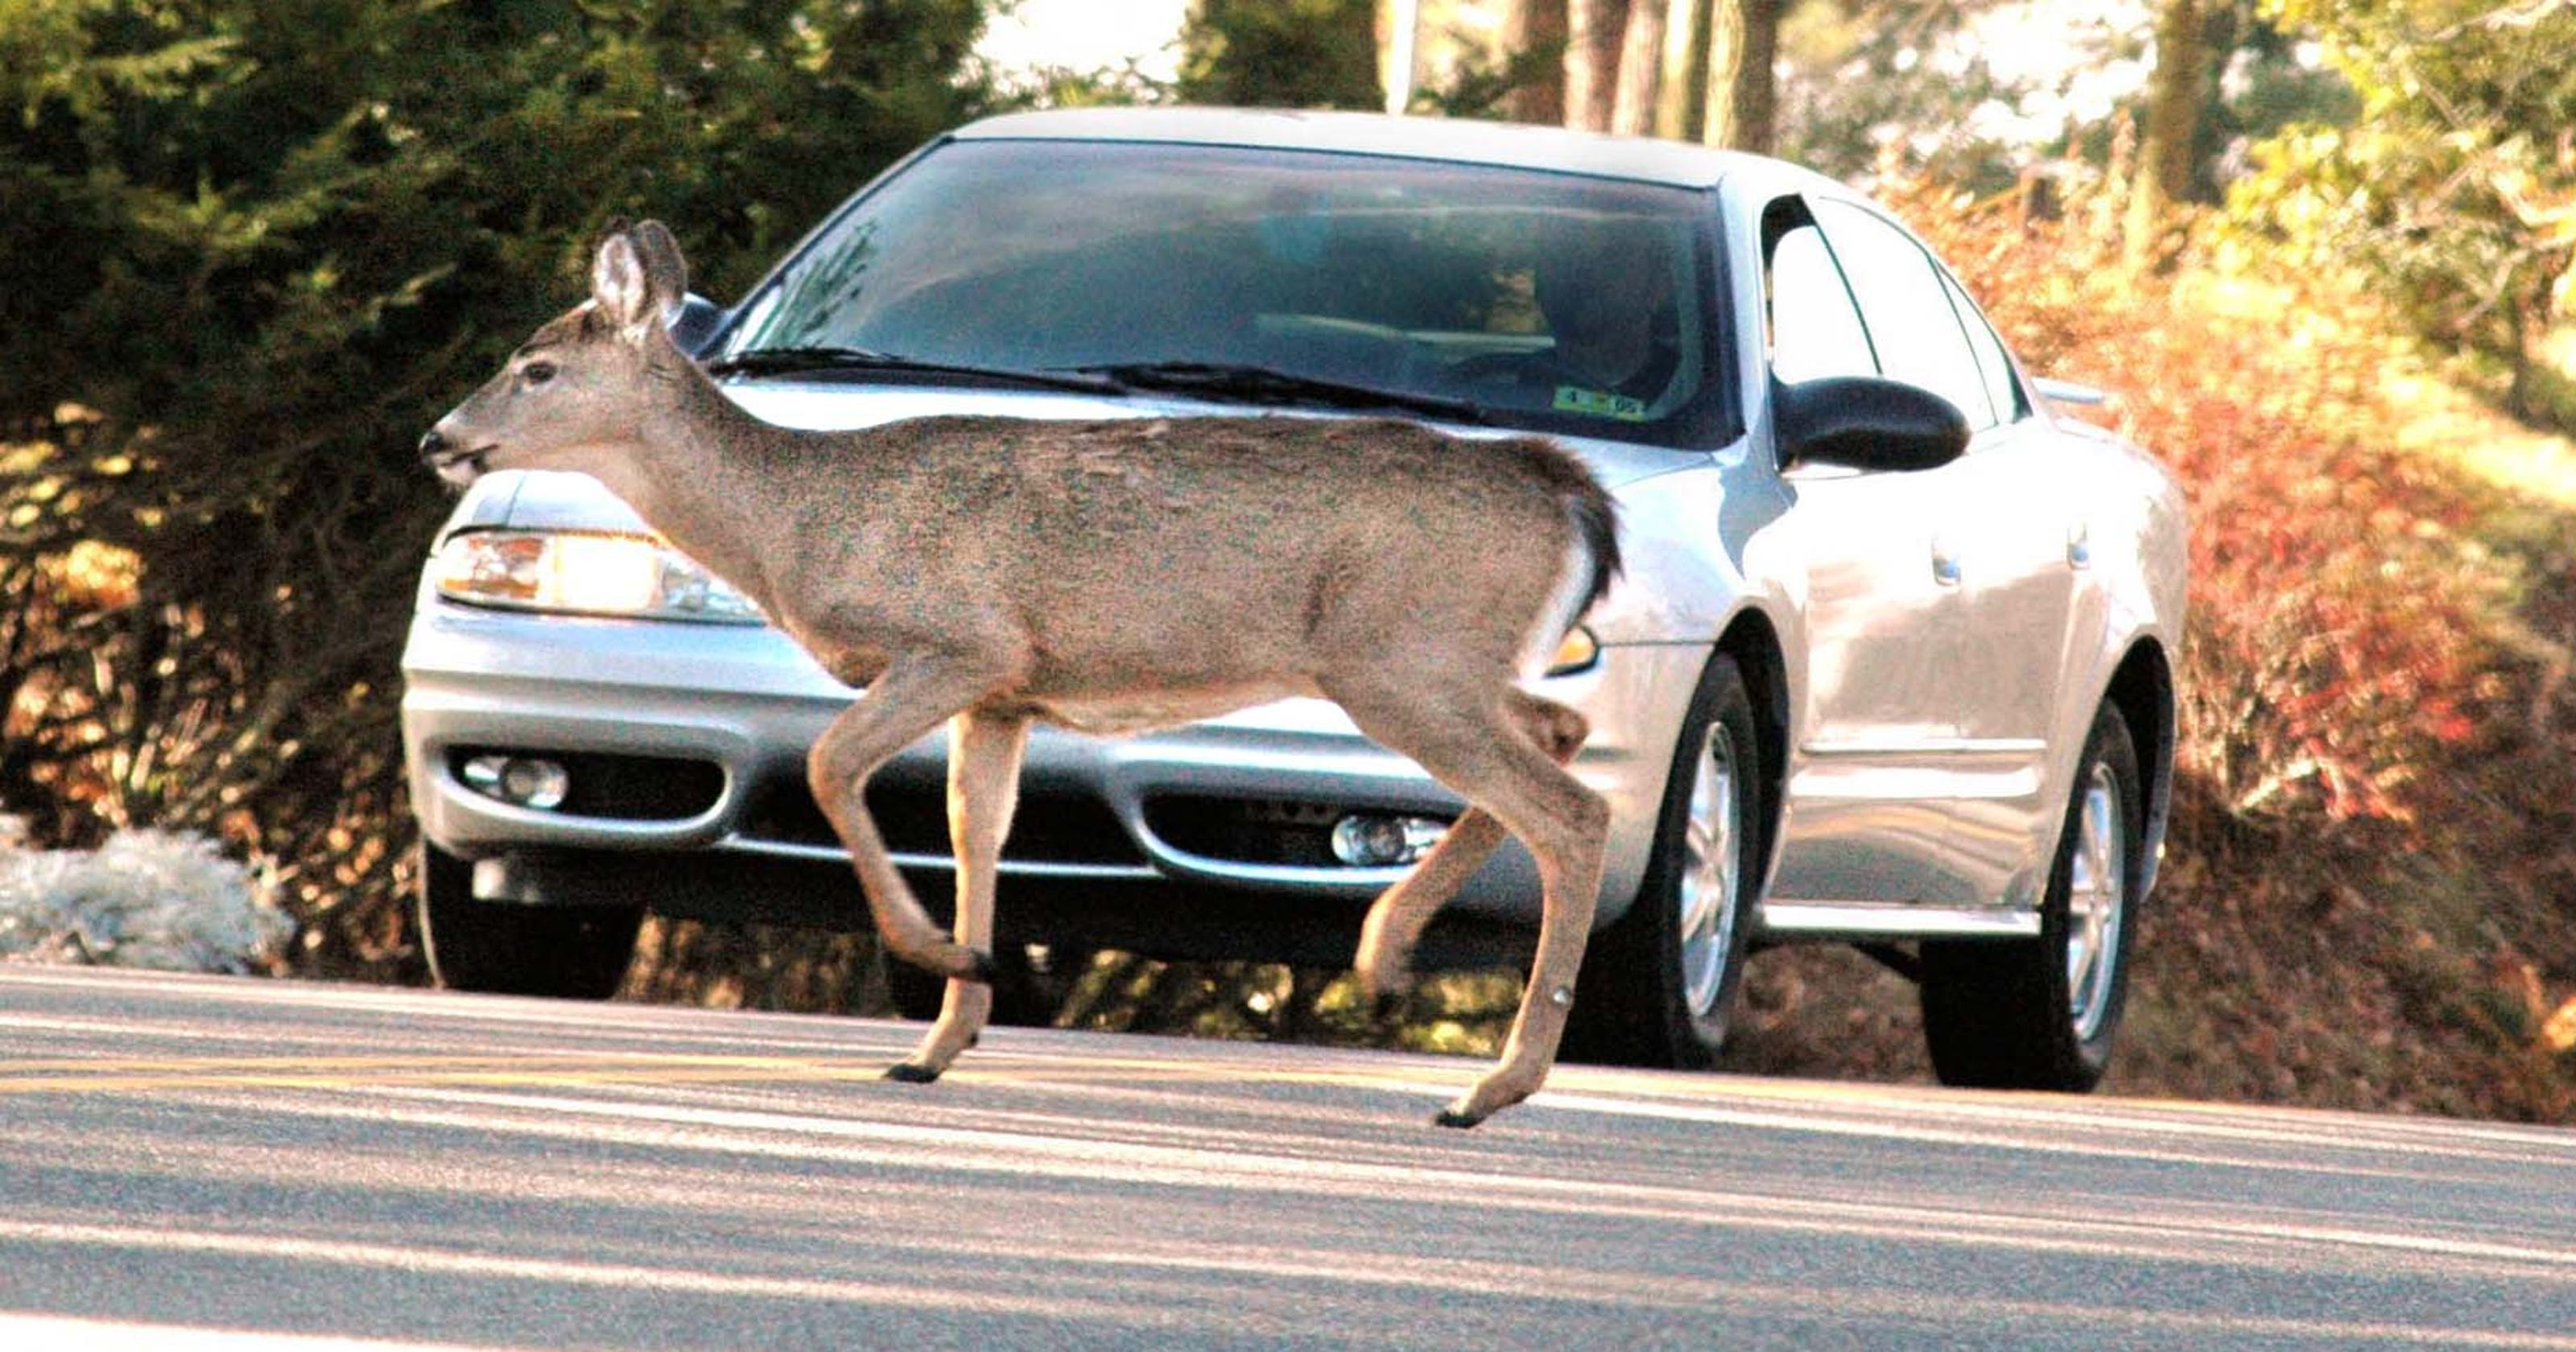 What To Do If You're About To Hit A Deer With Your Car